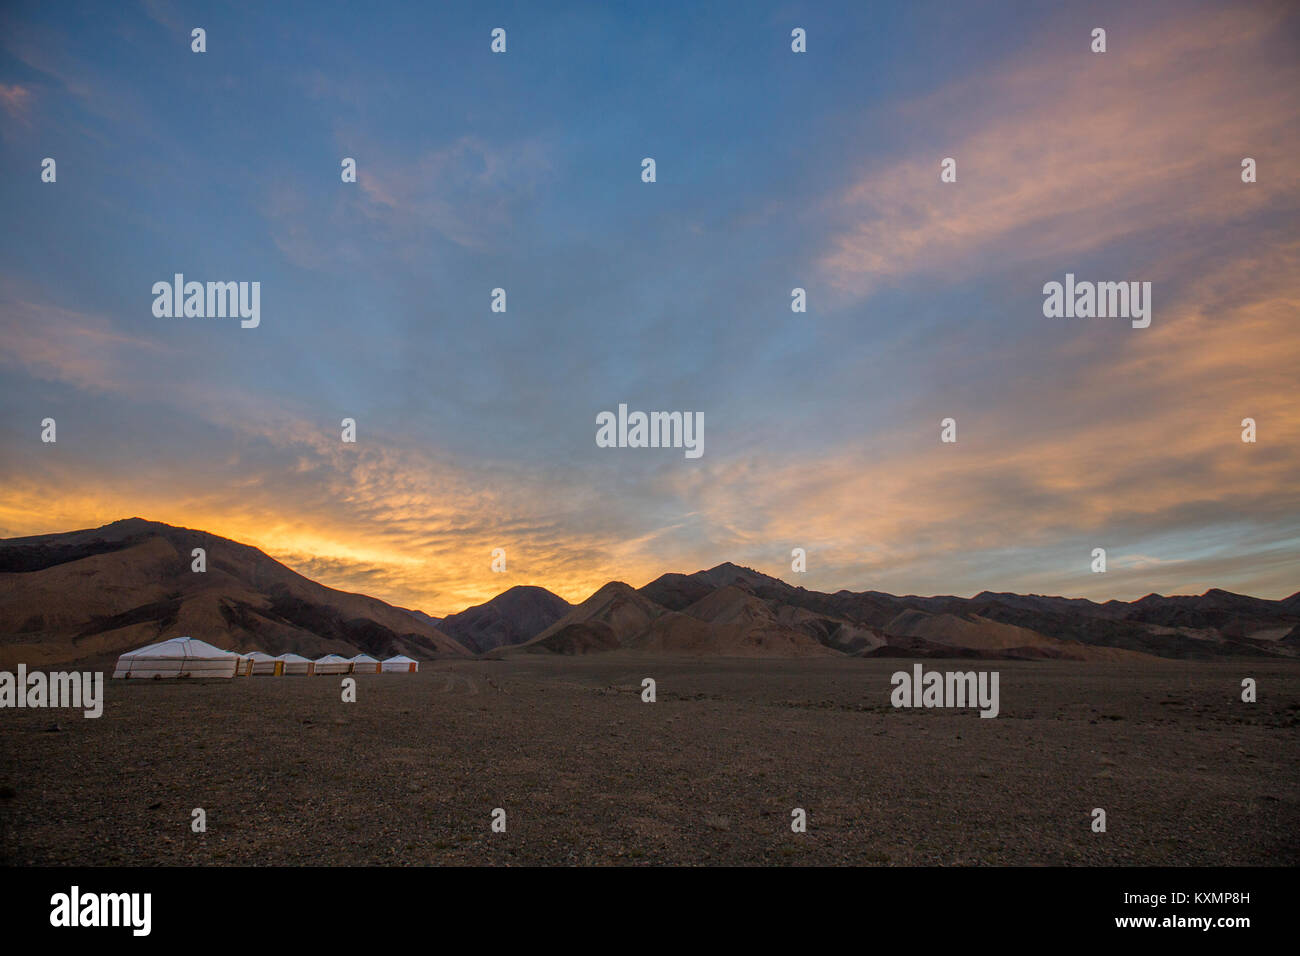 Scenic view with row of yurts in Altai Mountains at sunrise,Khovd,Mongolia - Stock Image